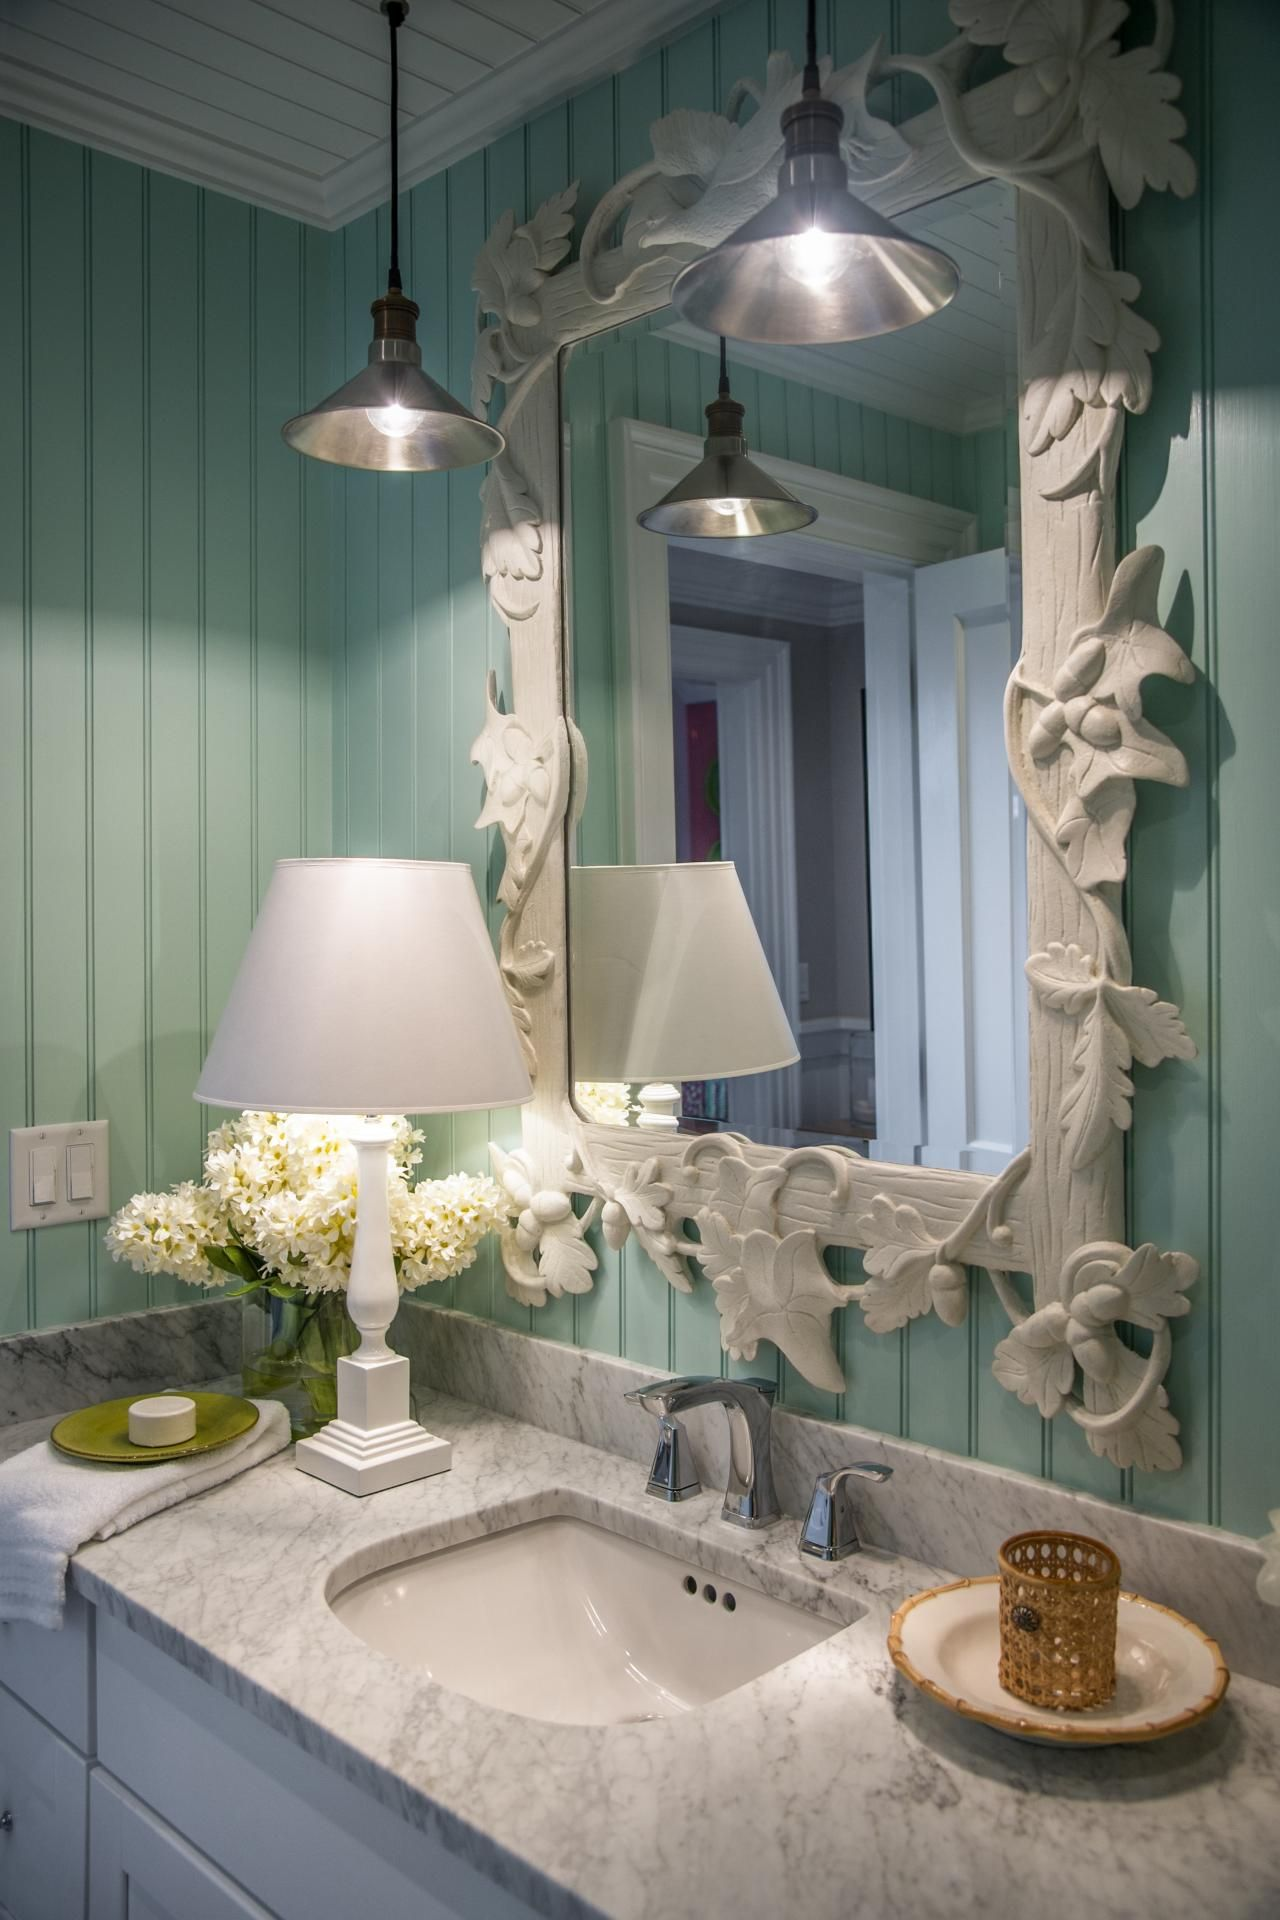 The Nature Inspired Style Of This Decorative Mirror Is Not Only Visually Interesting But Provides A Nice Contrast With Straight Lines Pastel